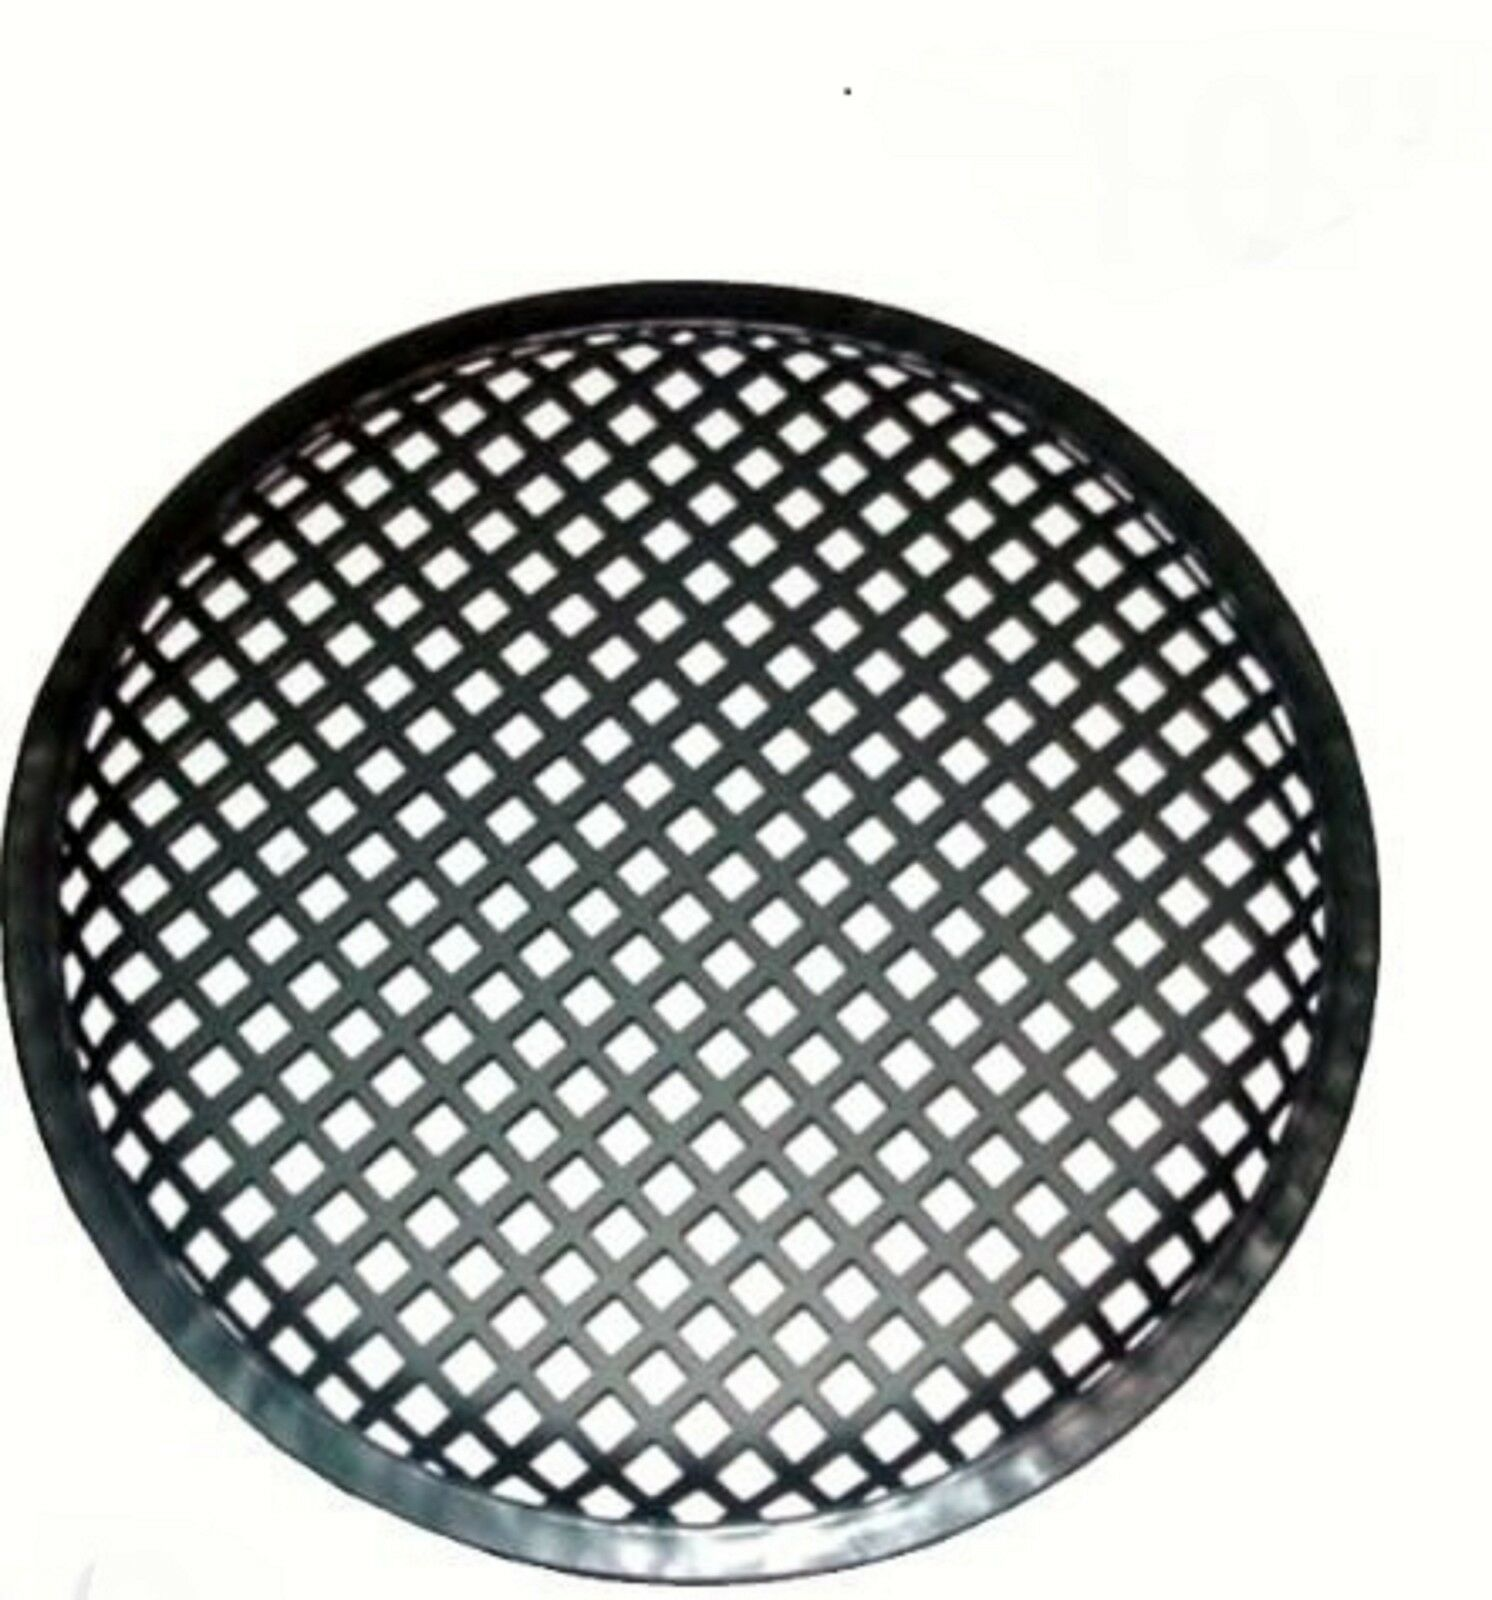 1 10 INCH SUBWOOFER SPEAKER COVERS WAFFLE MESH GRILL GRILLE PROTECT GUARD